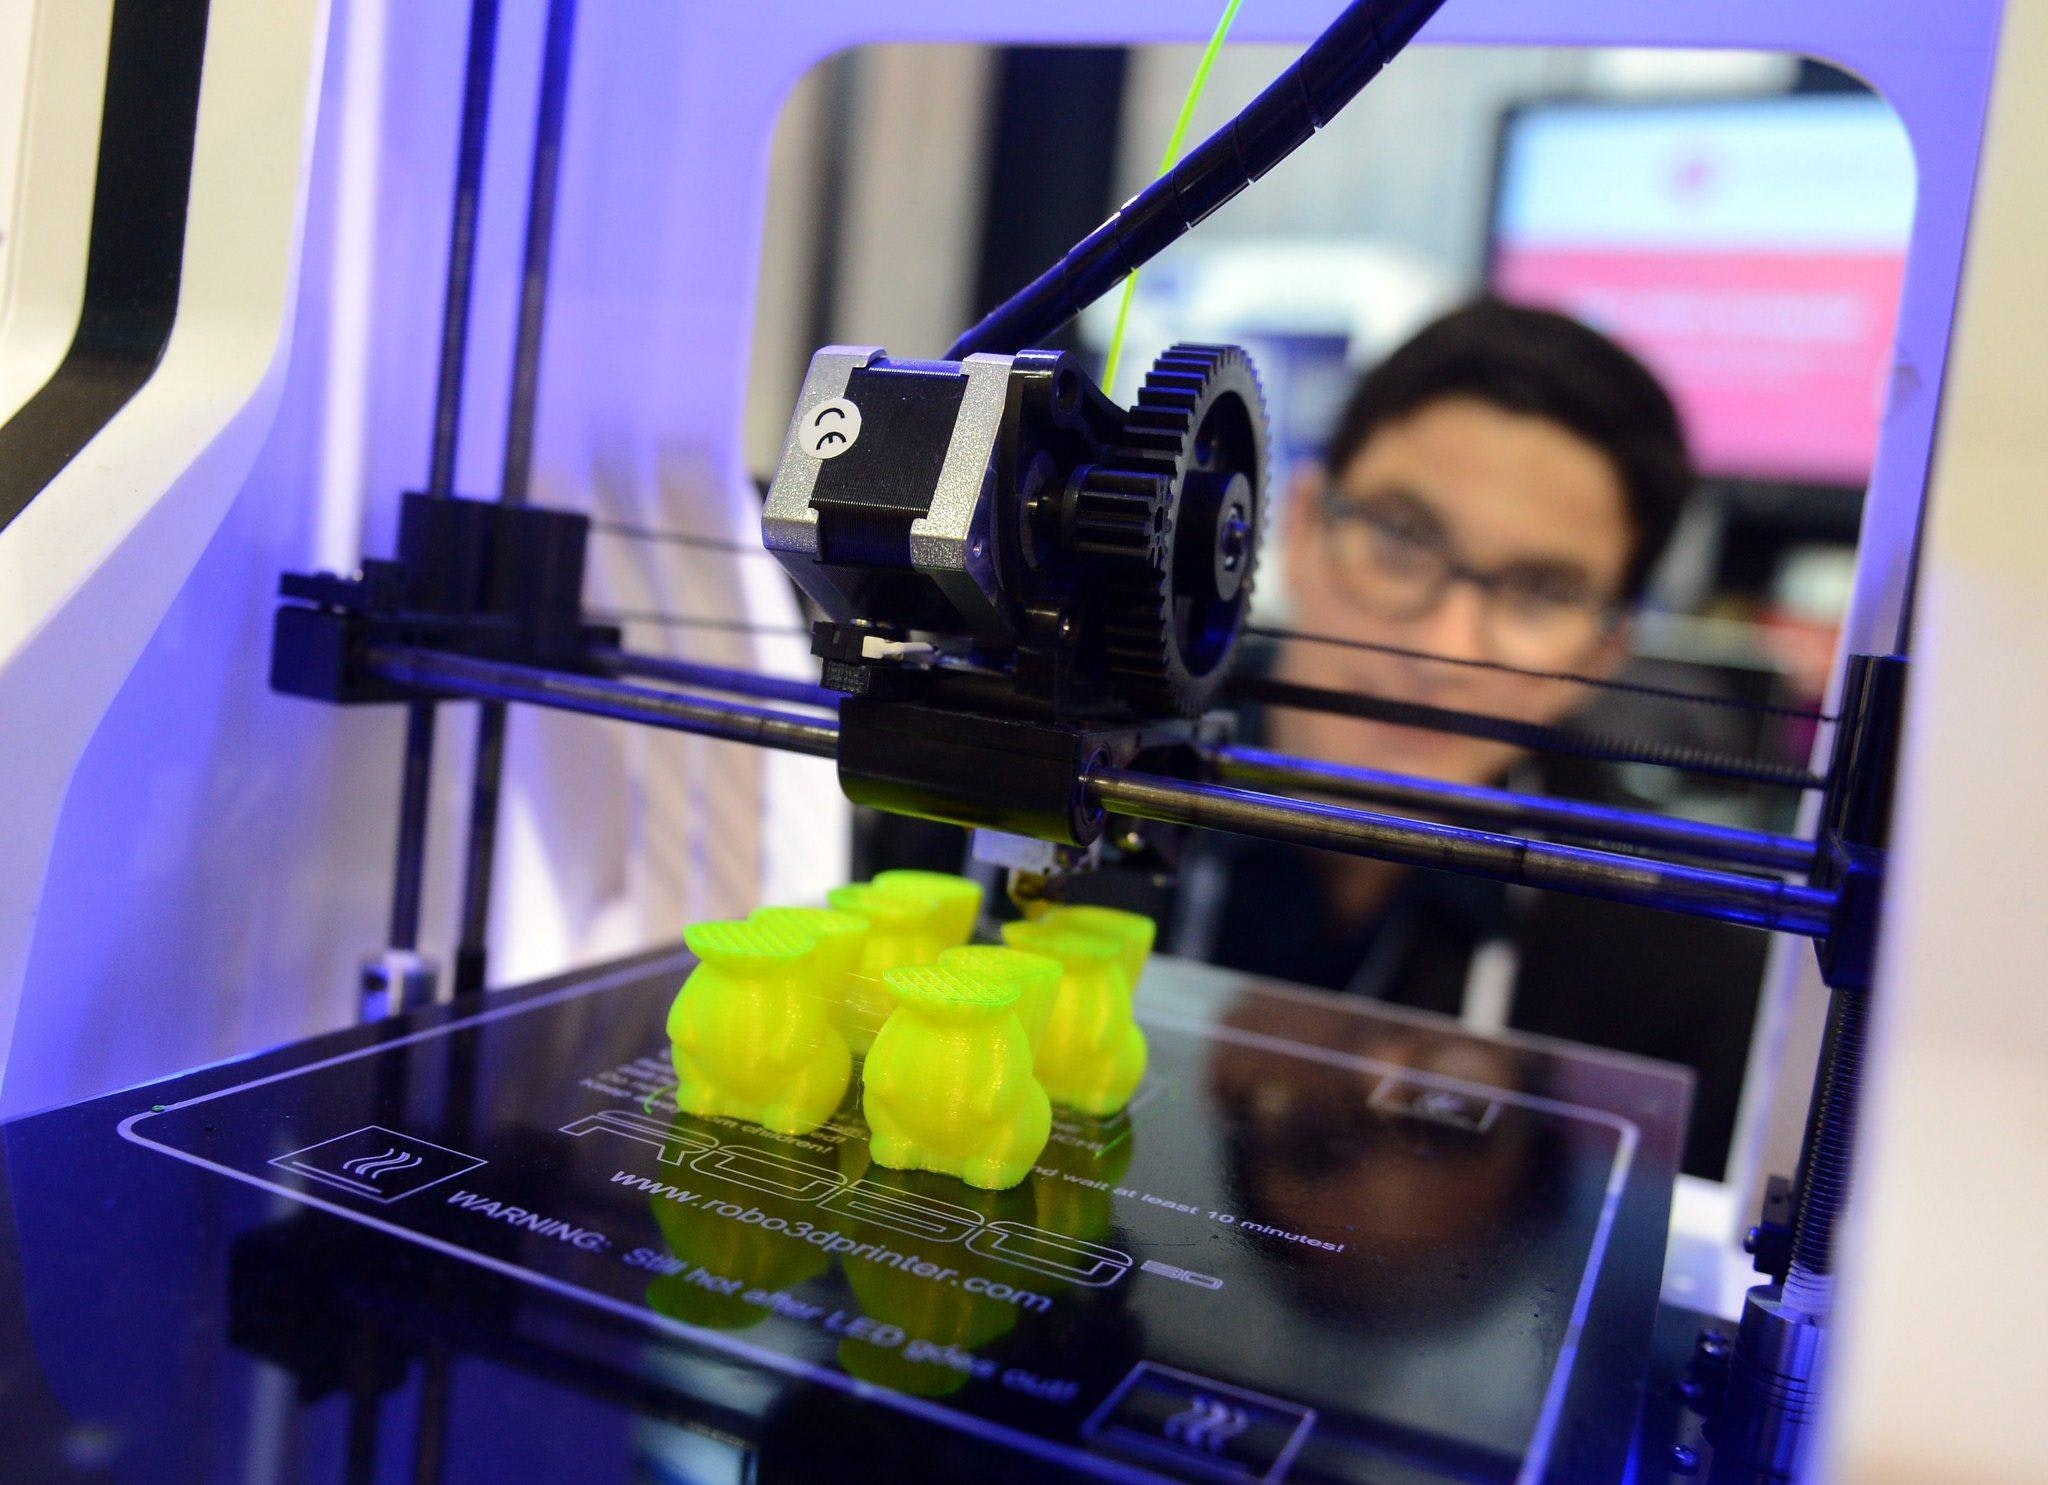 3-D printing market predicted to grow to $16.2 billion by 2018